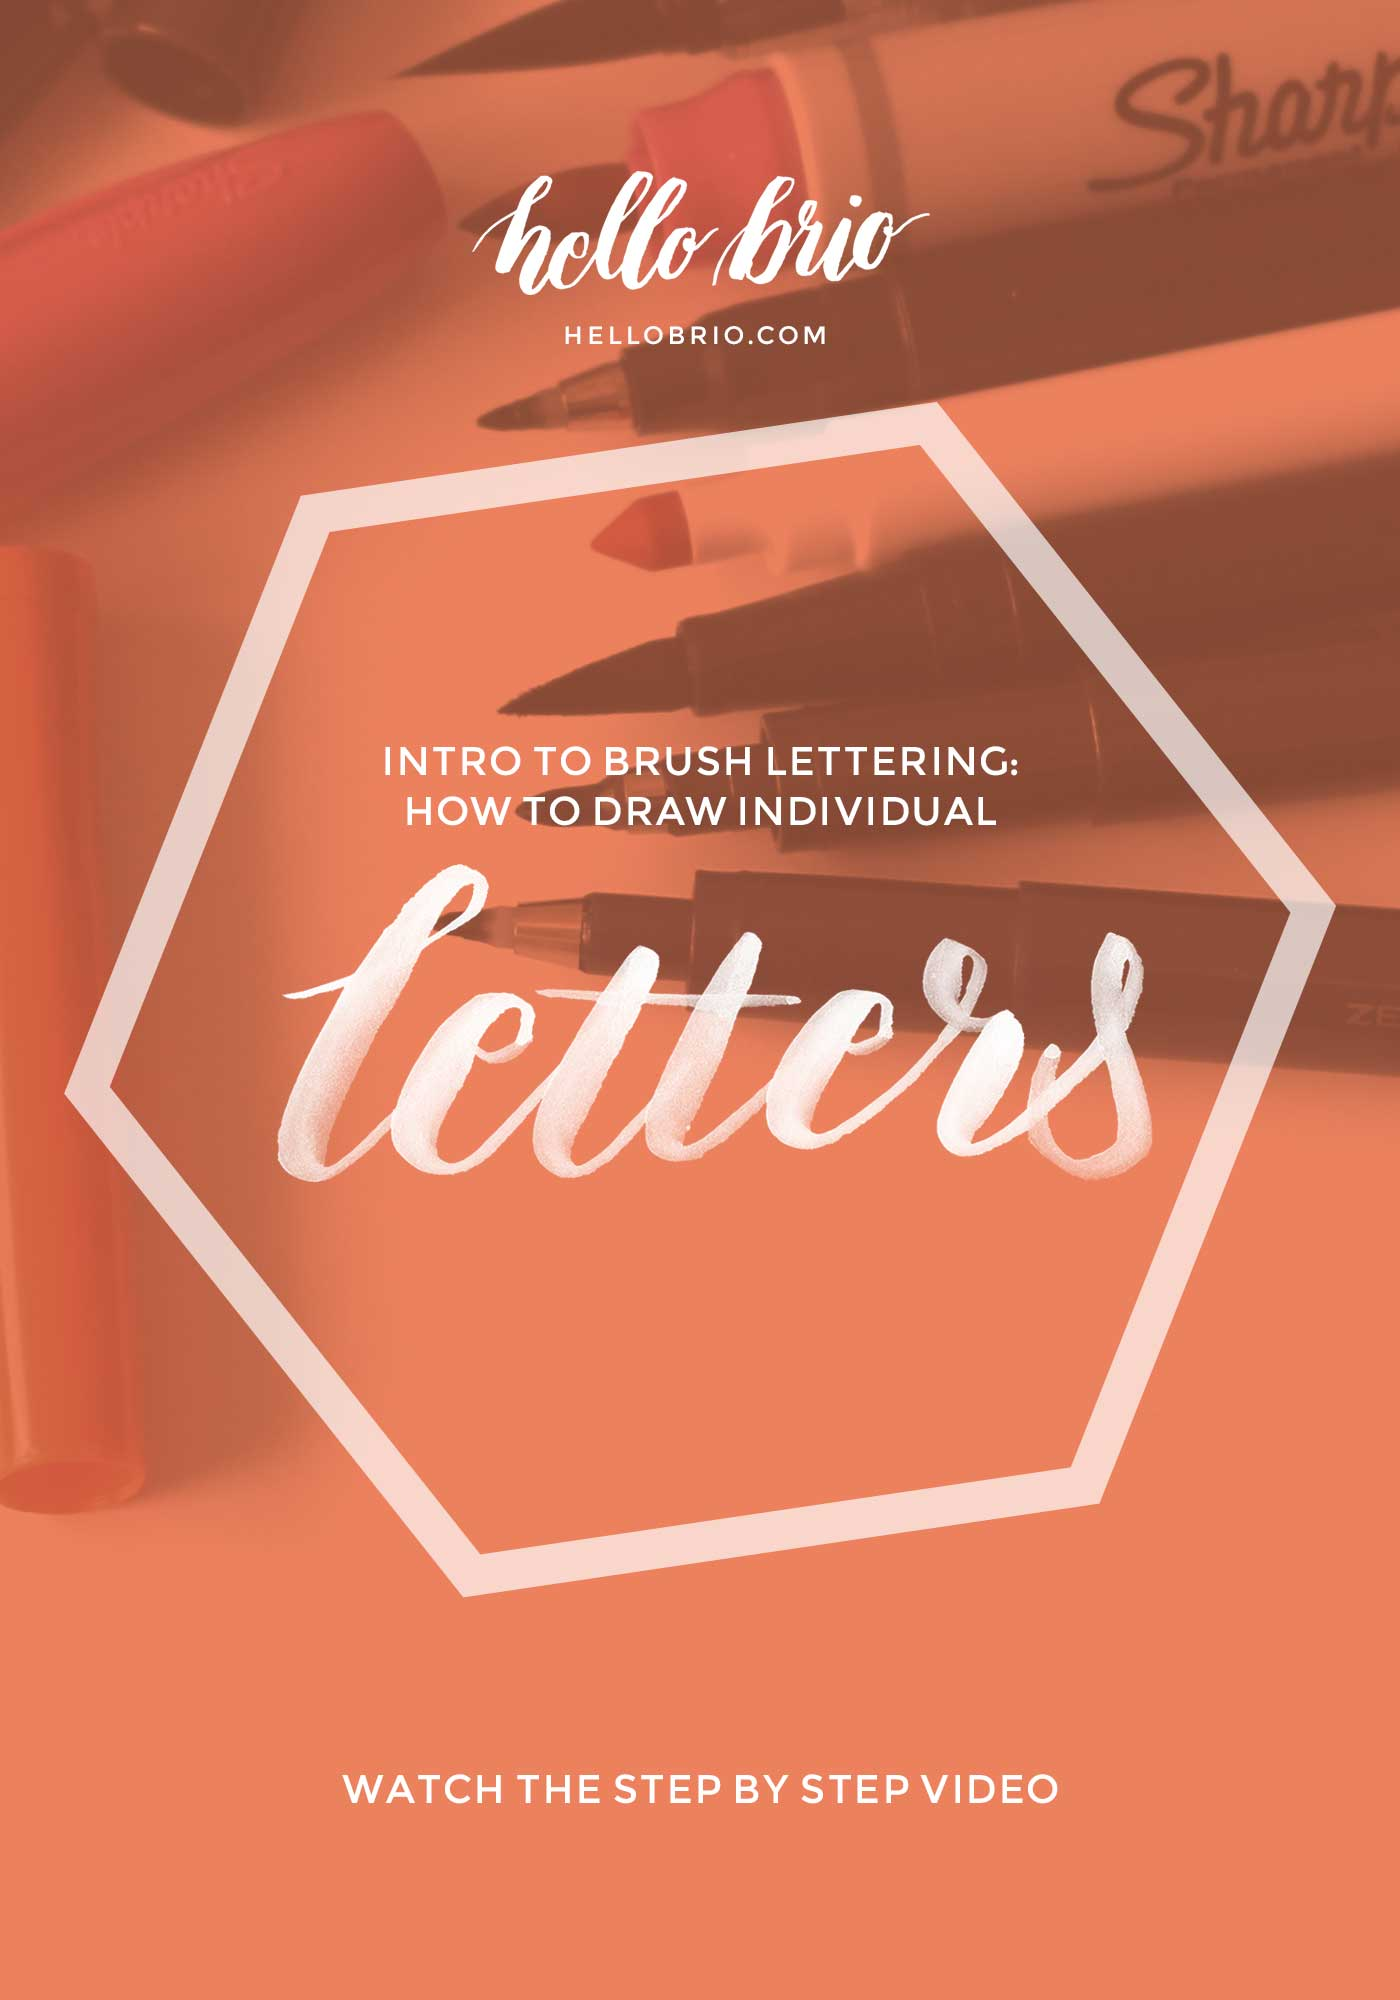 Intro to brush lettering: How to draw individual letters